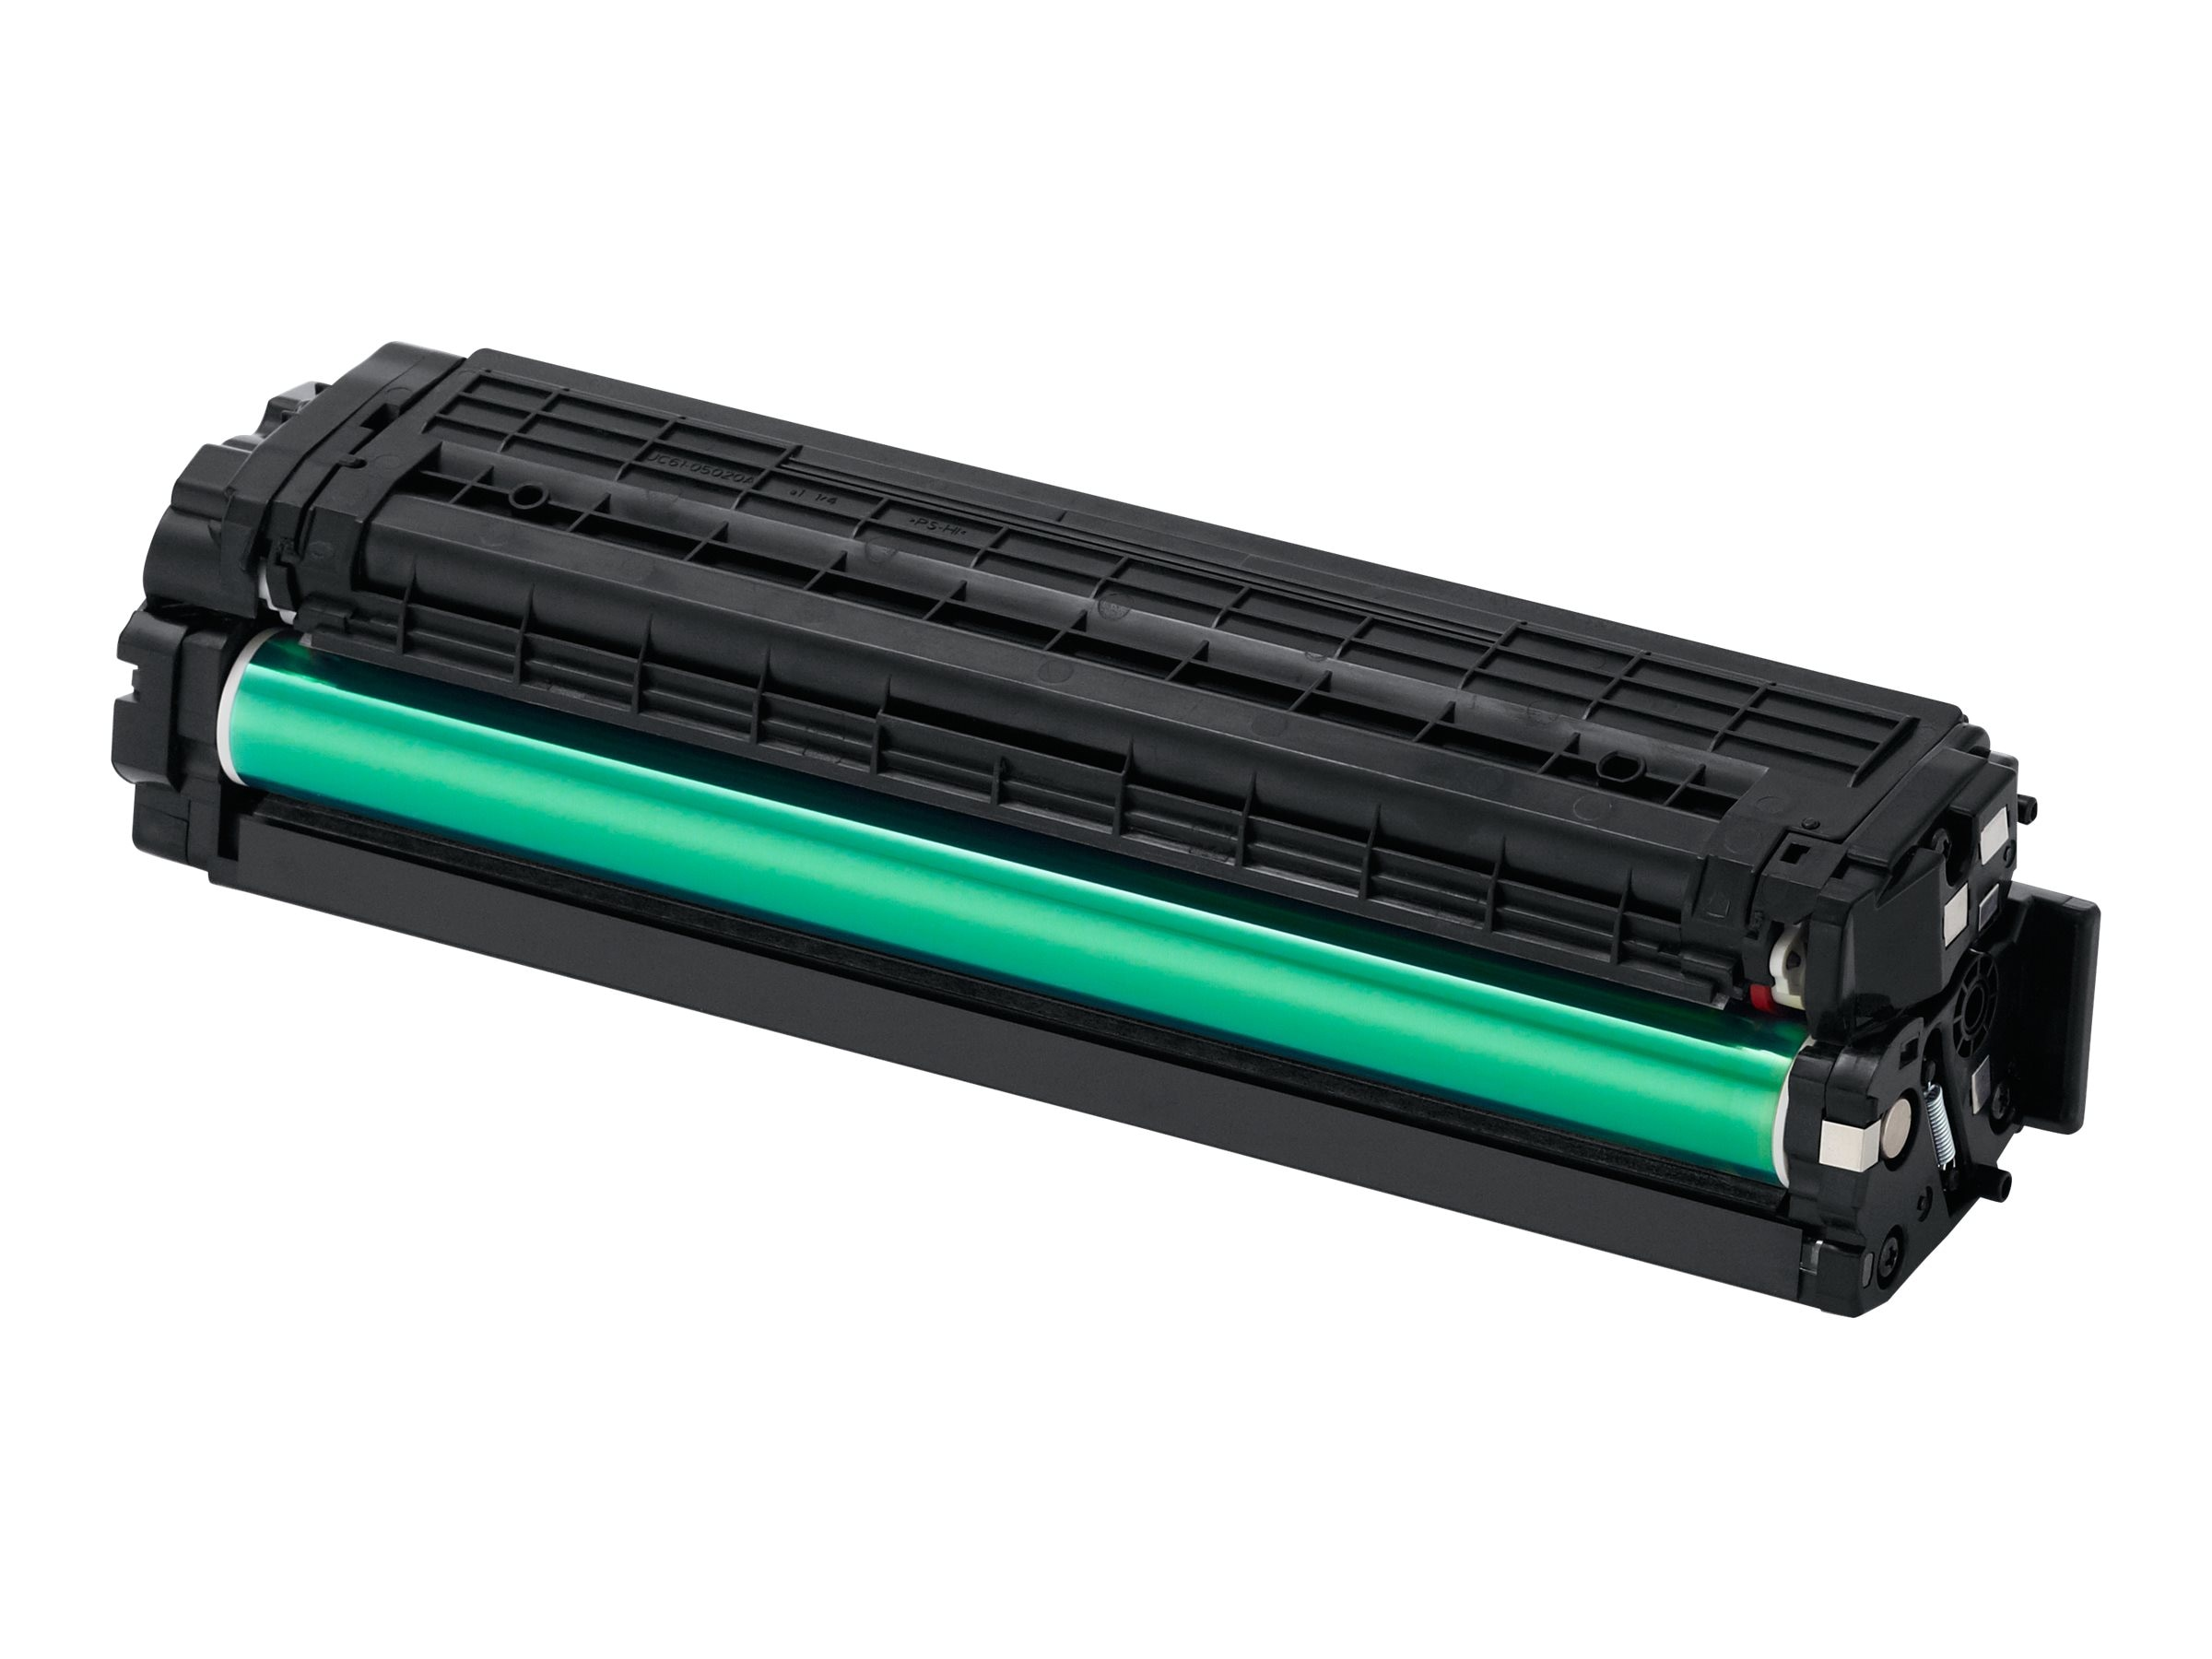 Samsung Yellow Toner Cartridge for CLP-415NW Color Laser Printer &  CLX-4195FW Color Multifunction Printer